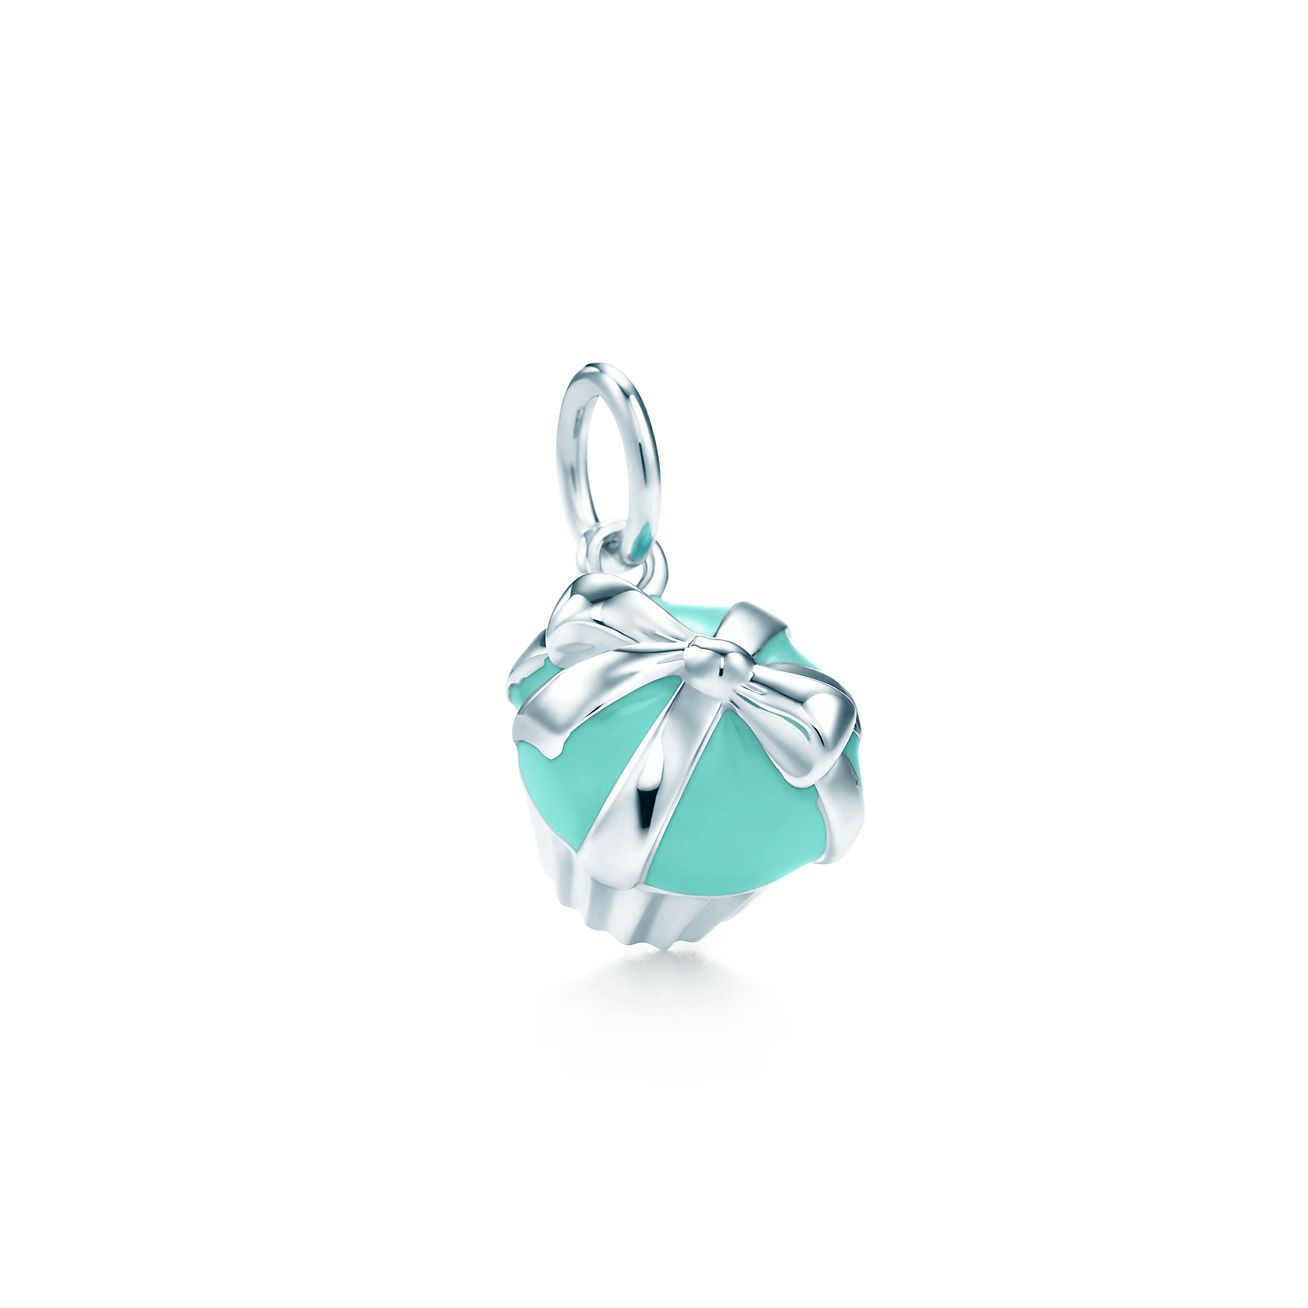 cupcake charm in sterling silver with blue 174 enamel